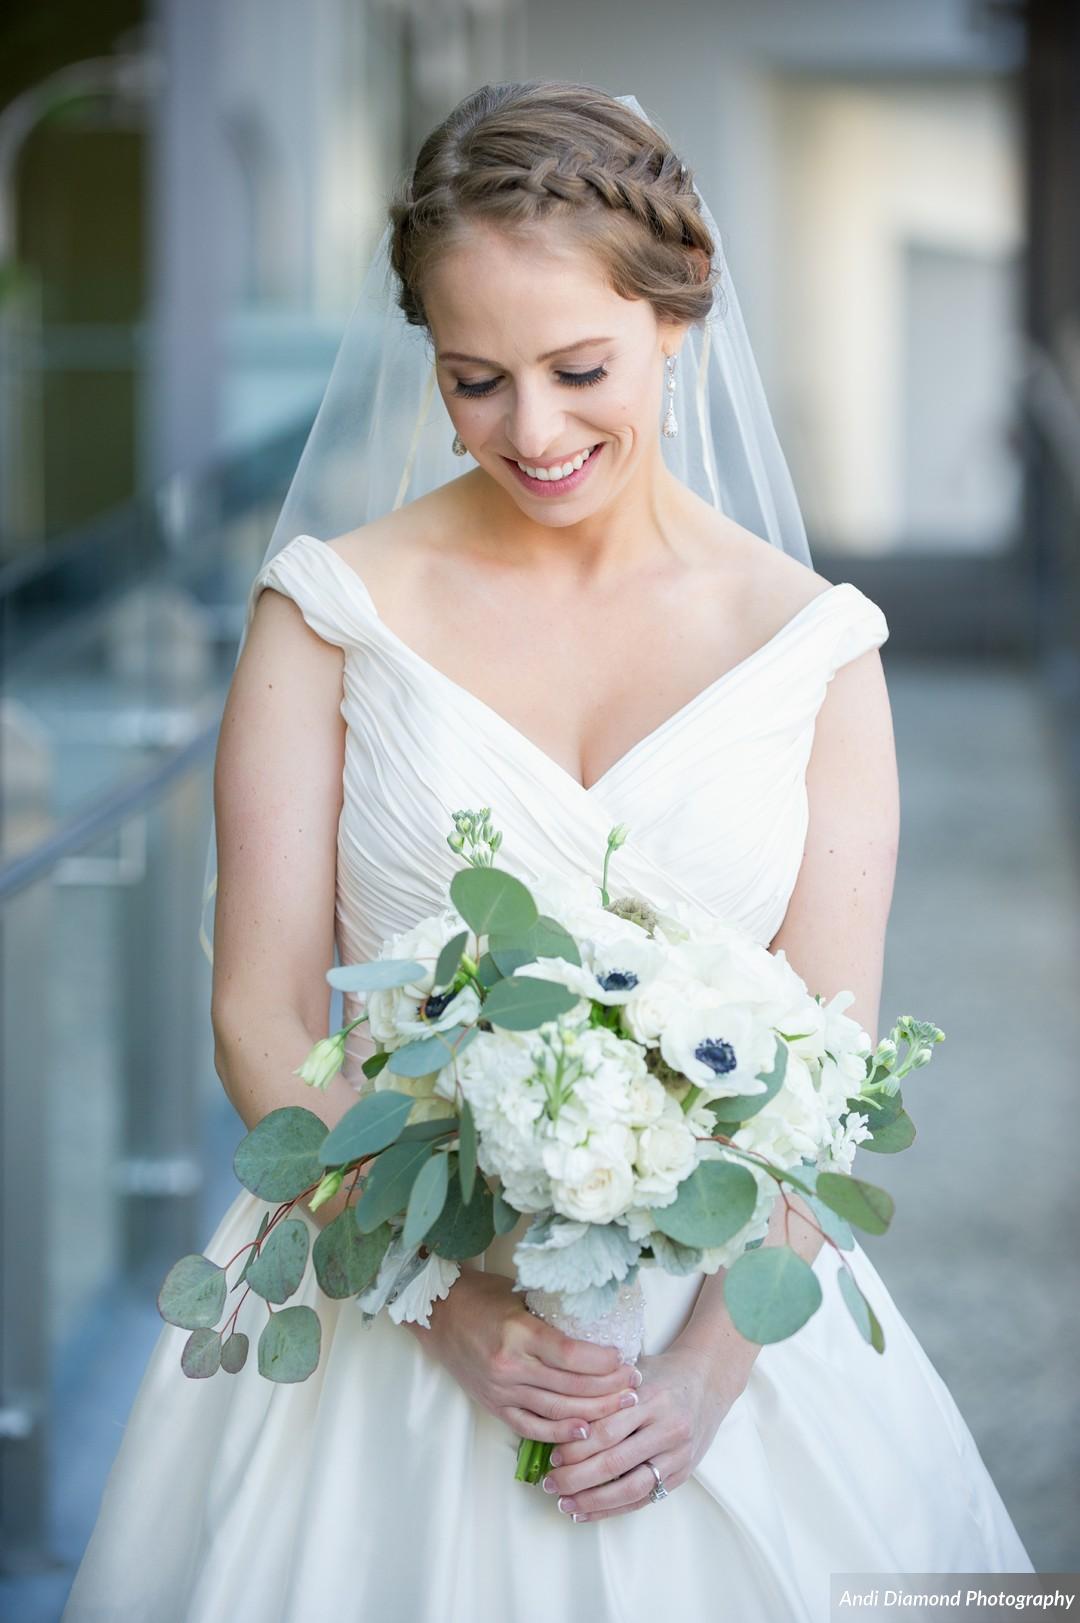 Timeless elements like this natural bouquet and the bride's mikado, slightly off-the-shoulder dress were a stunning addition to the classic details of the ceremony and reception.